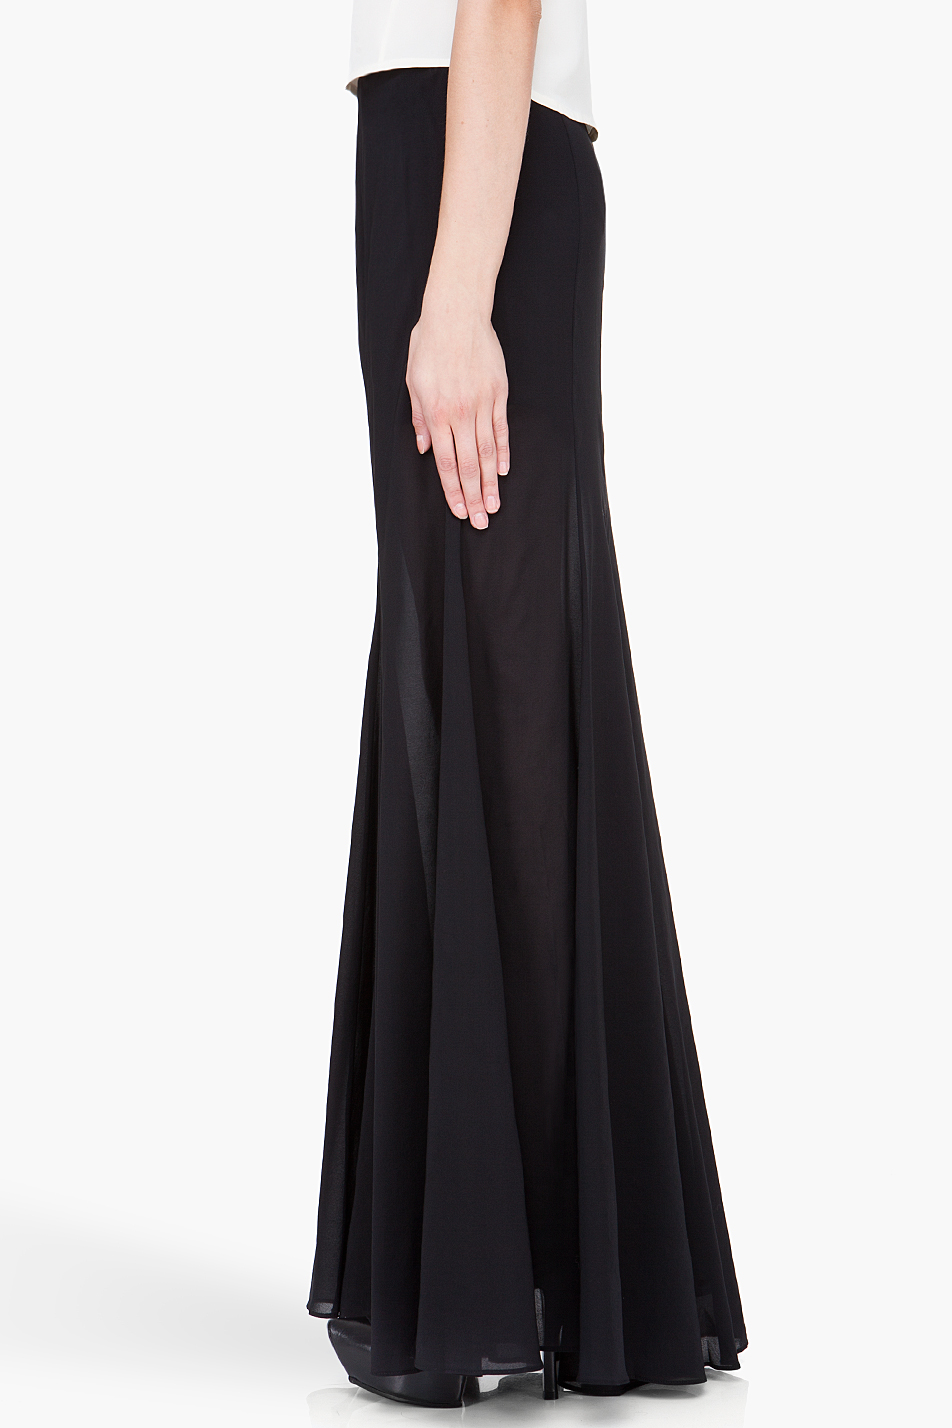 Theyskens' theory Long Black Silk Skirt in Black | Lyst